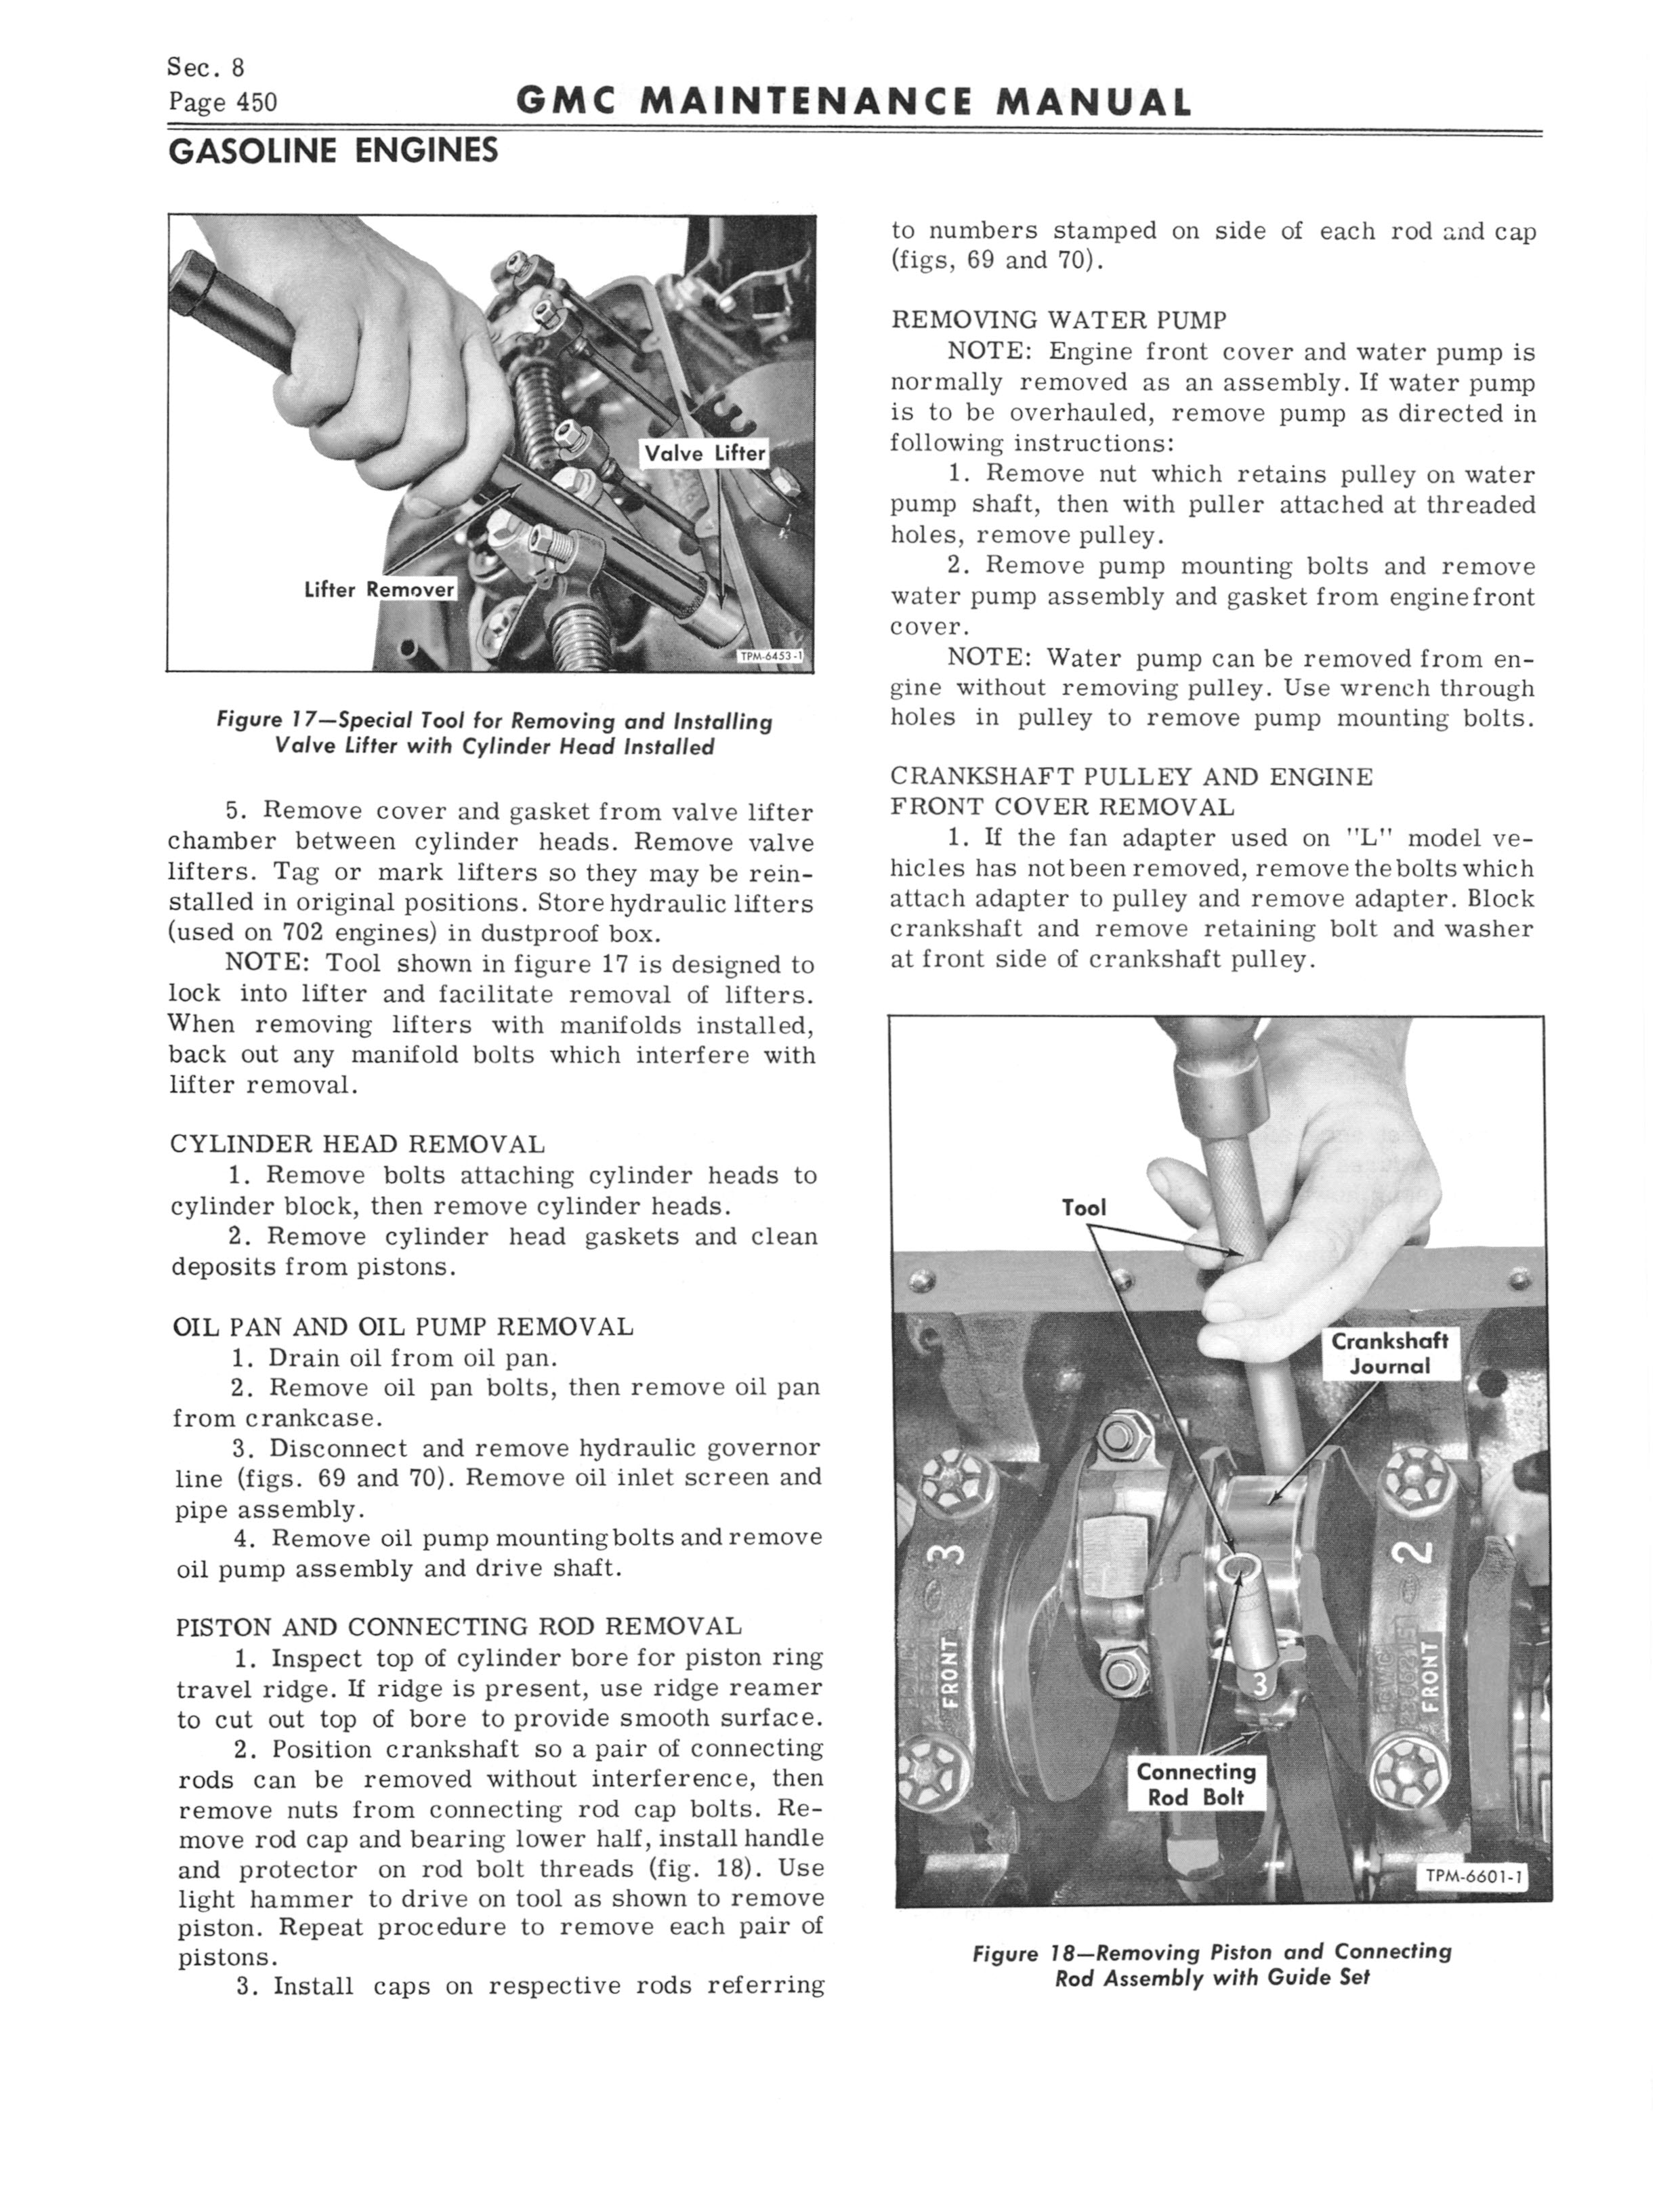 1964 GMC Series 5500-7100 Maintenance Manual page 476 of 834